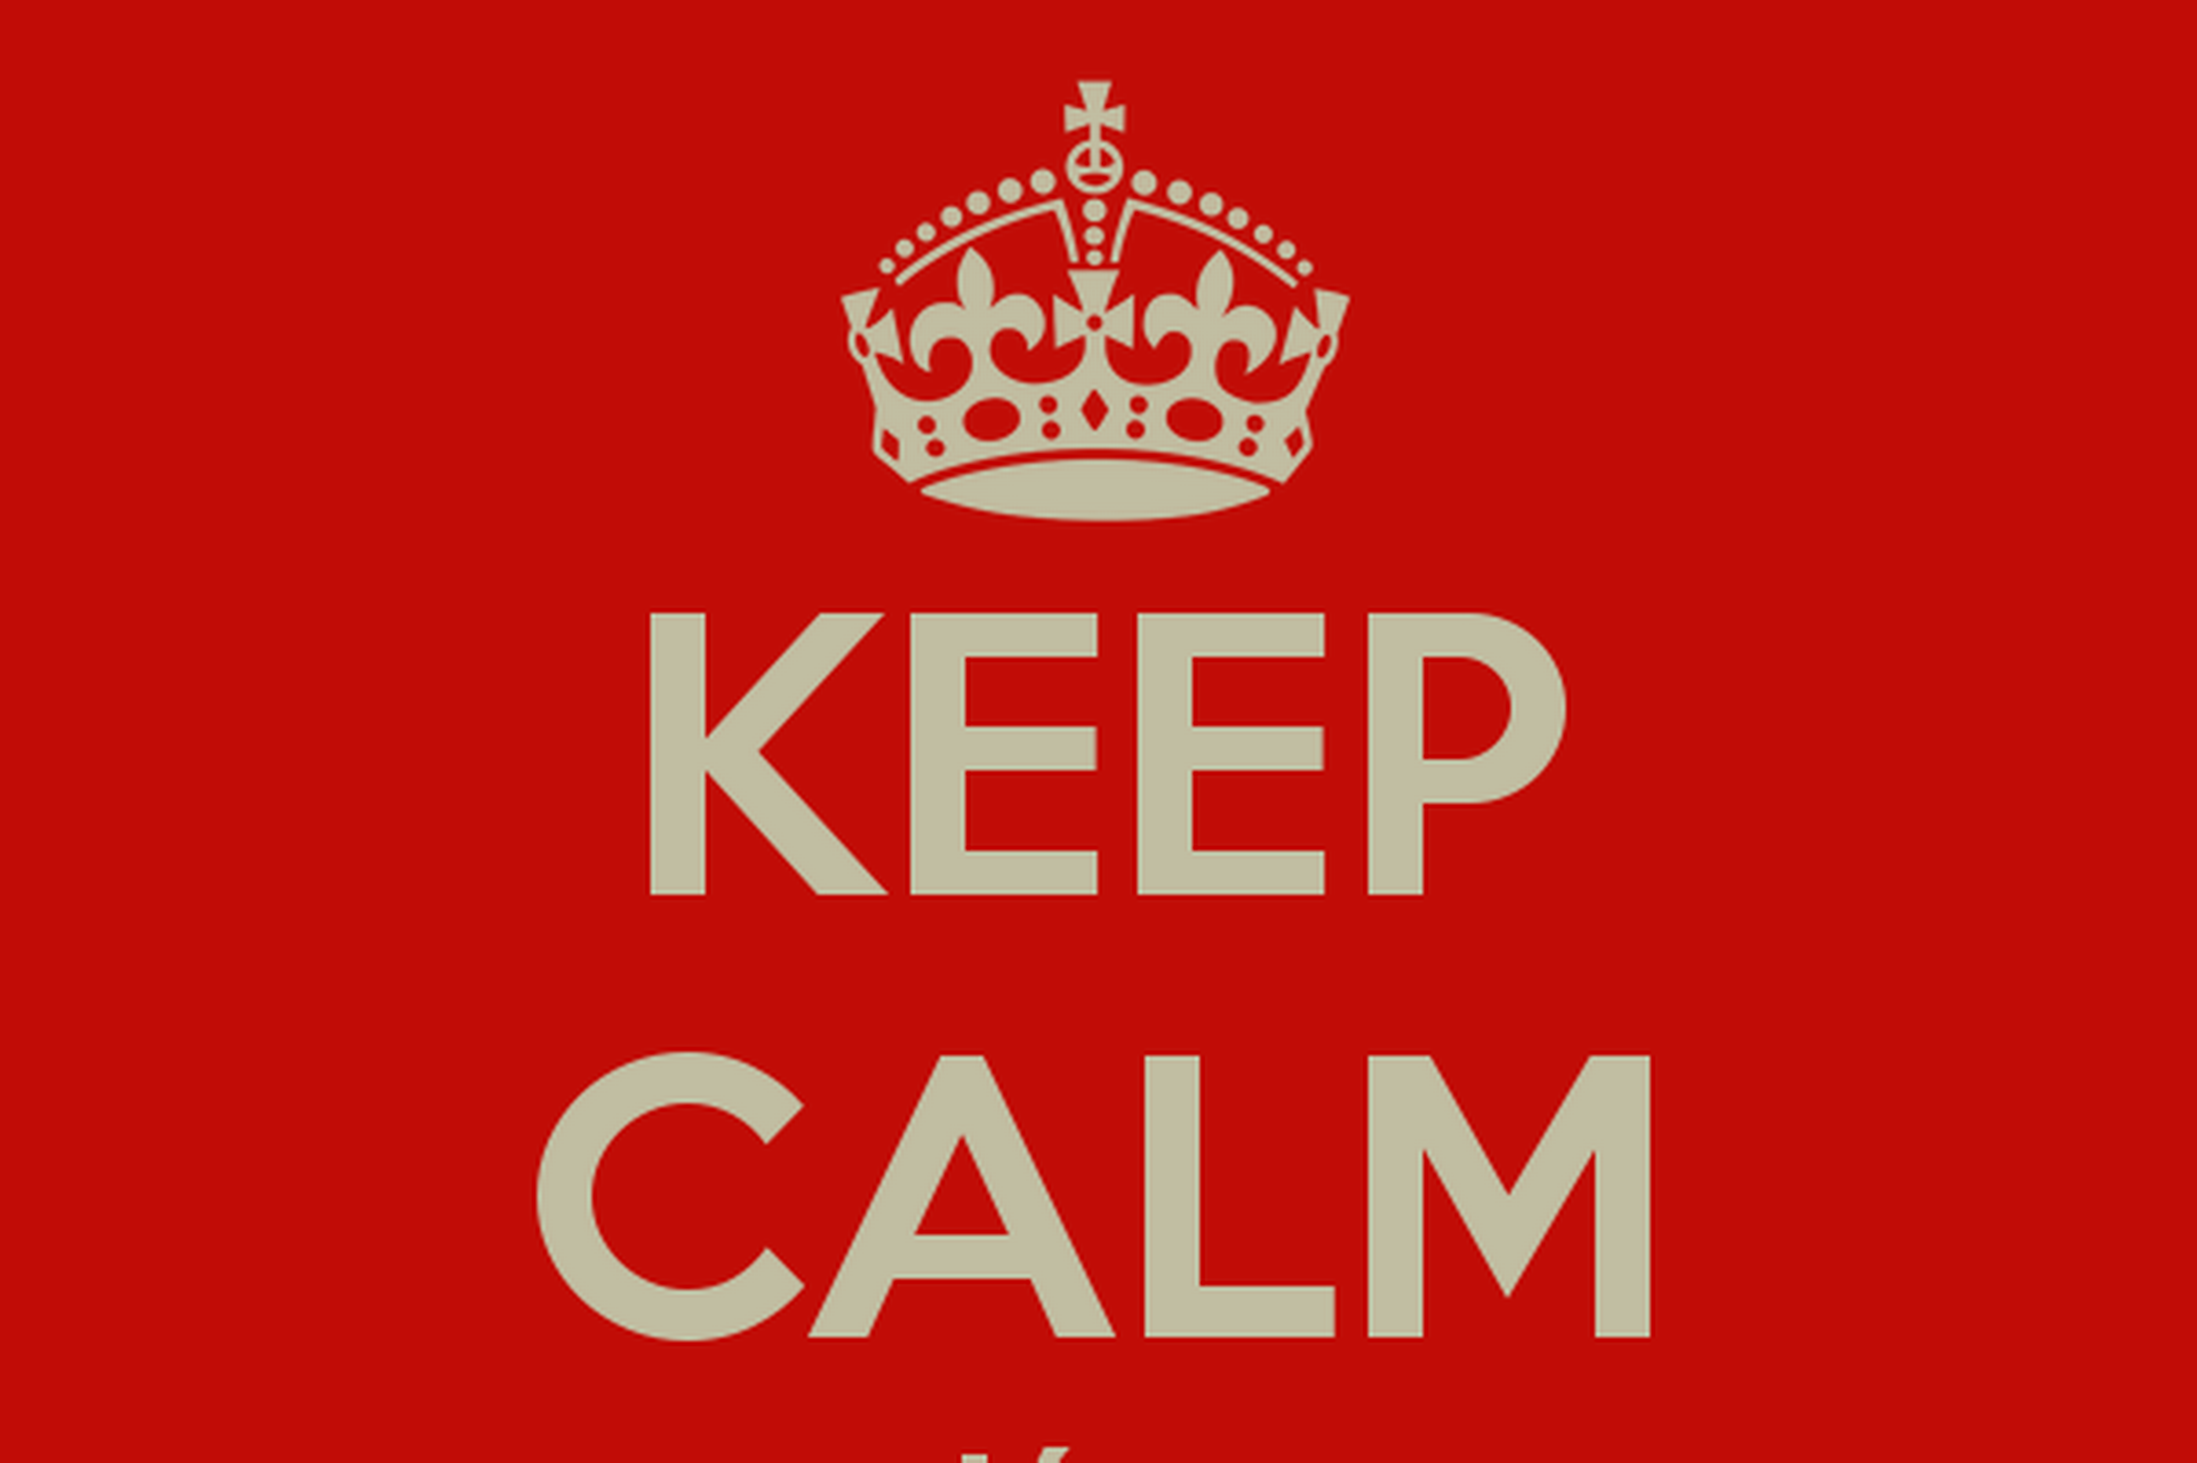 http://www.hdwallpaper.nu/wp-content/uploads/2015/02/keep-calm-i-m-turning-13.png